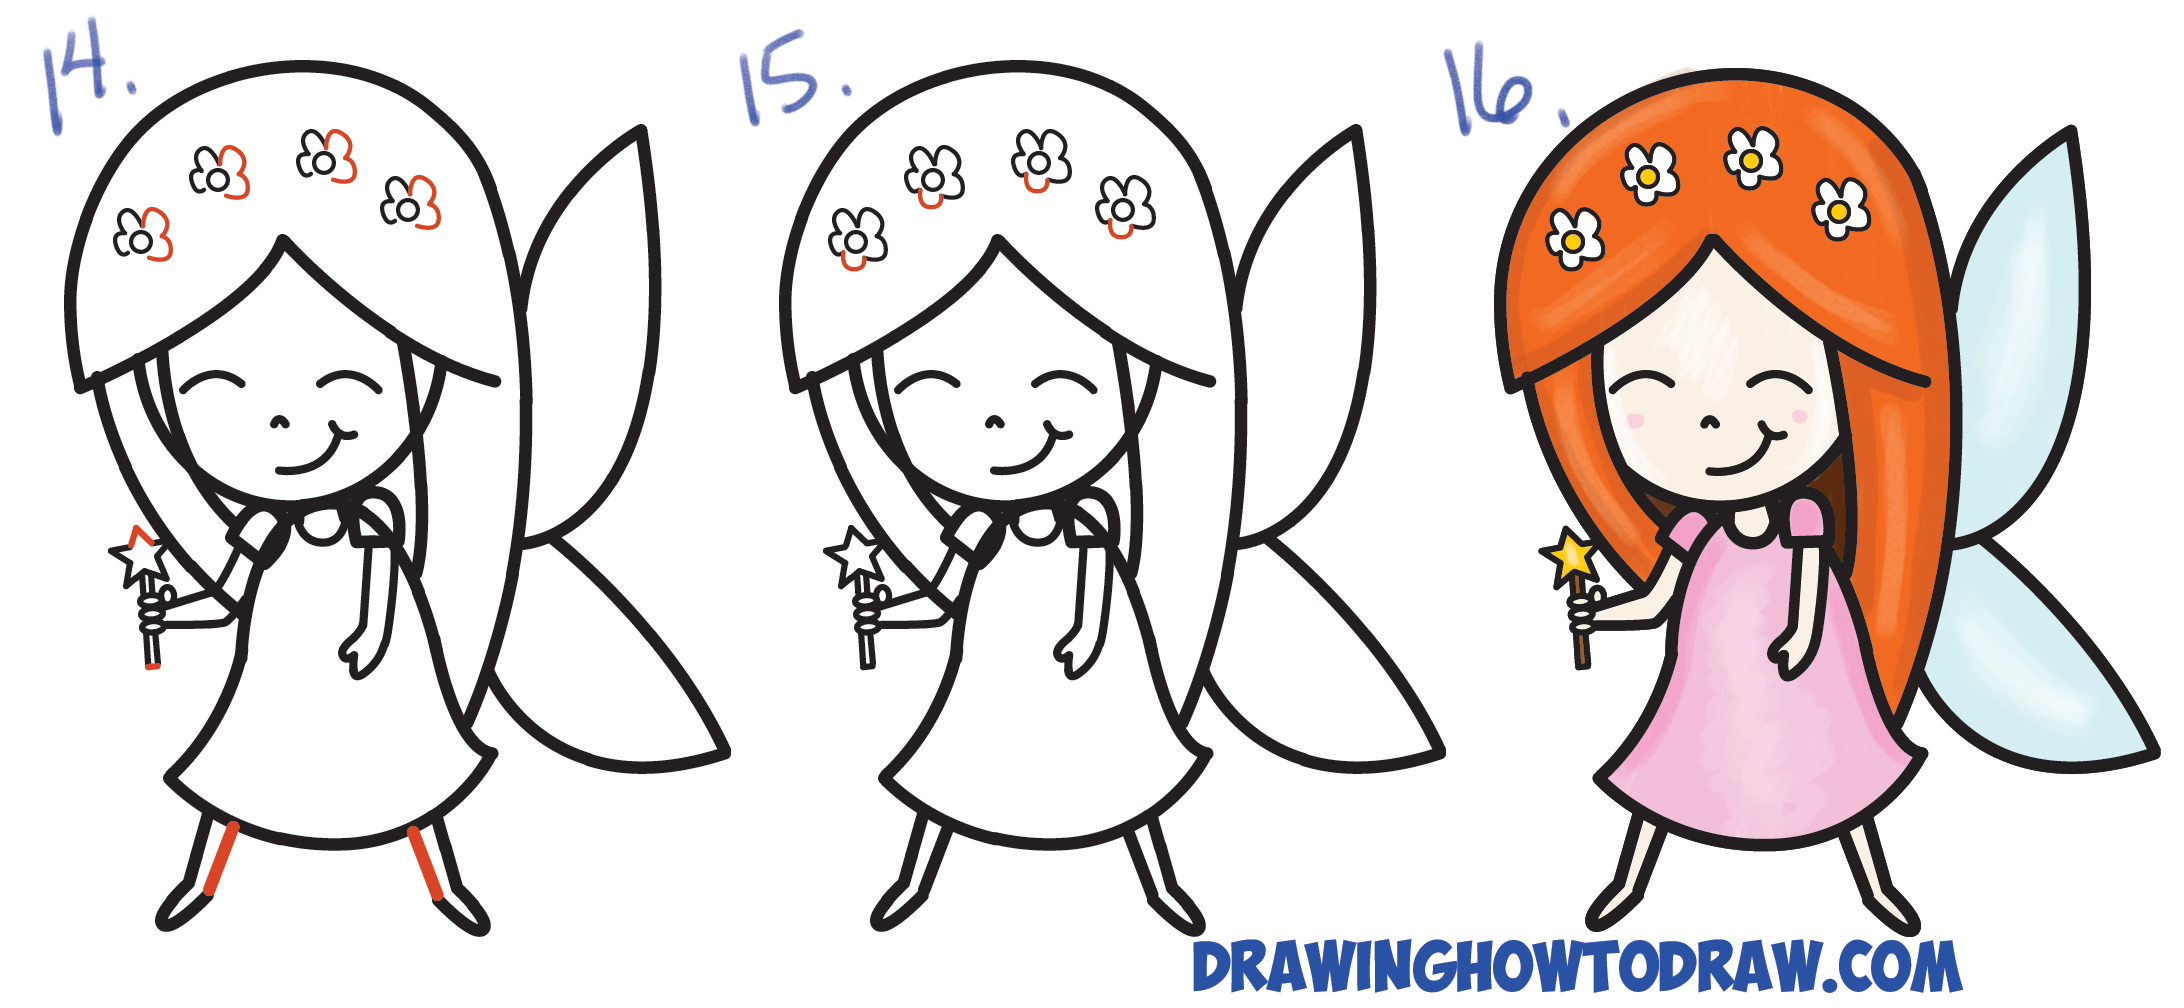 Uncategorized Simple Fairy Drawings how to draw a cute cartoon fairy kawaii chibi from letter k learn k